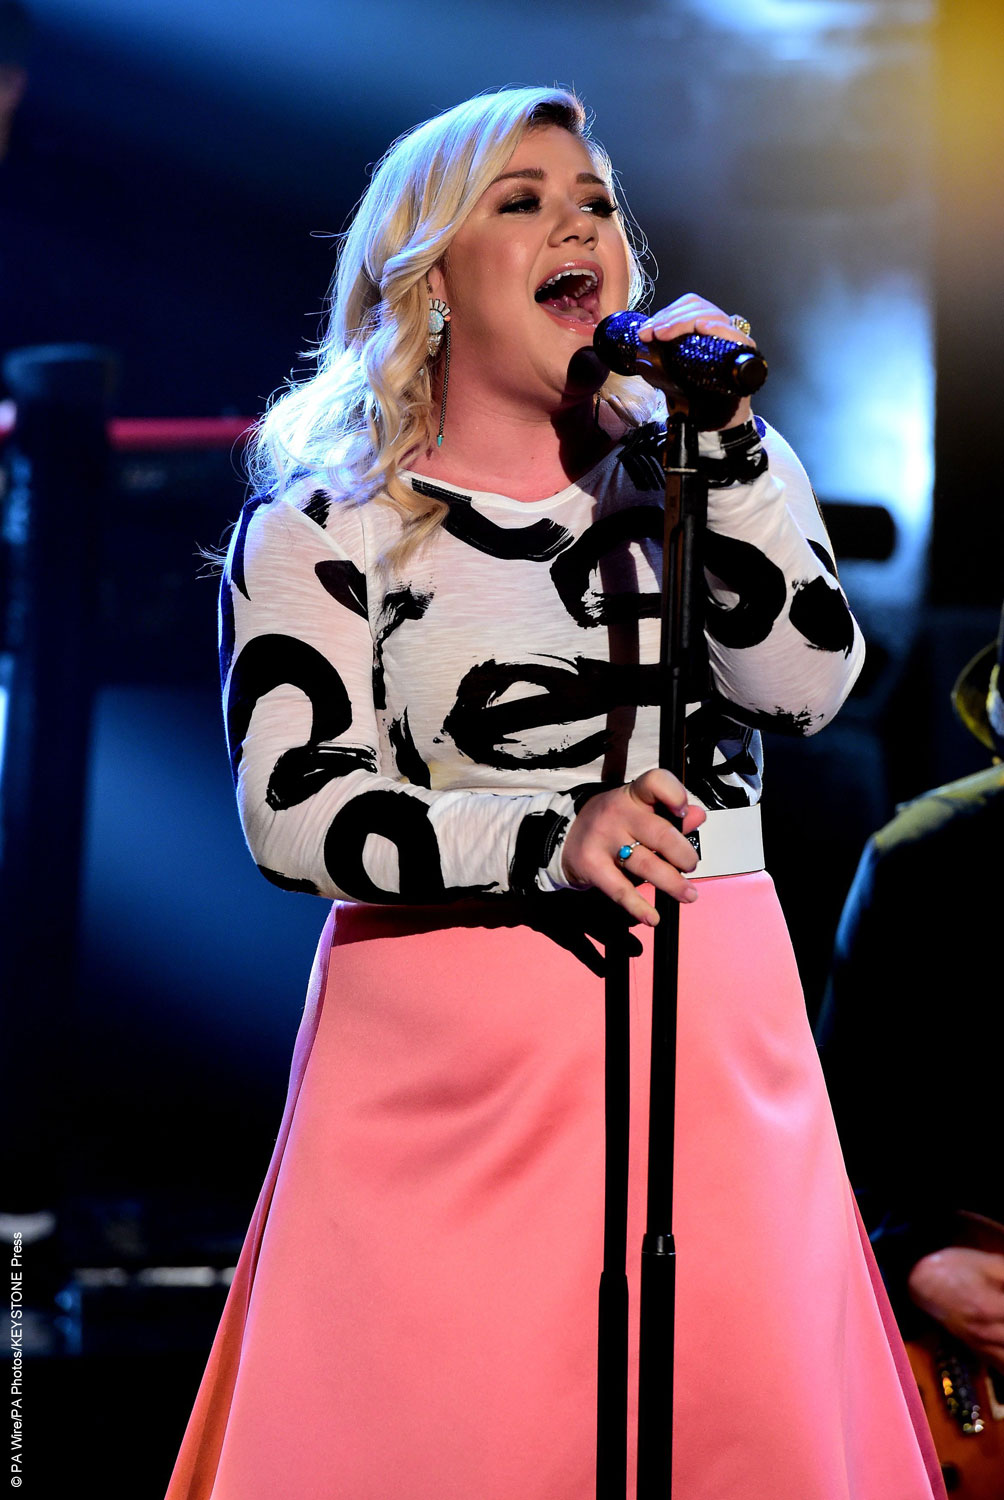 Kelly clarkson celebrity gossip and movie news for How many kids does kelly clarkson have